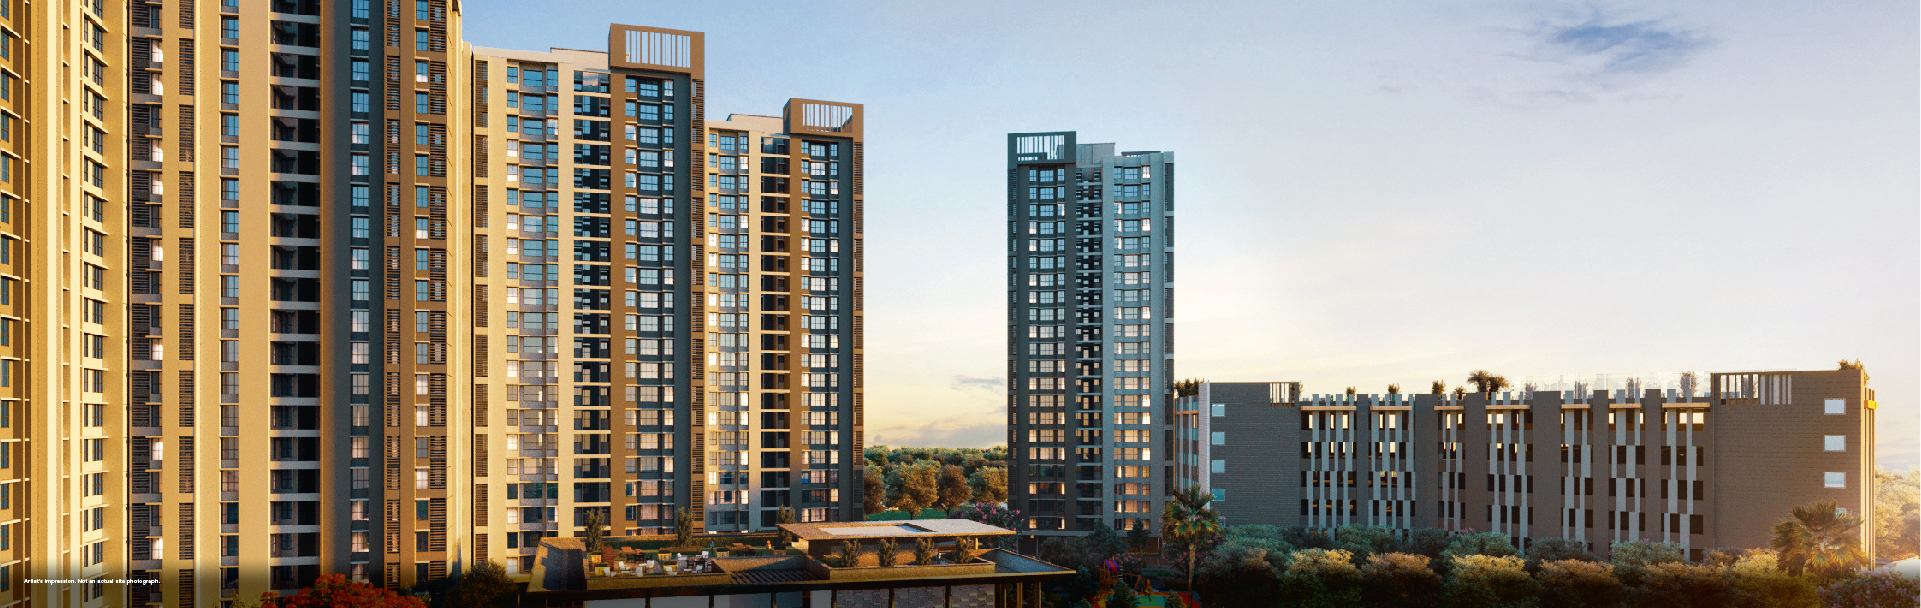 Godrej Ashok Vihar - New Residential Project in Delhi